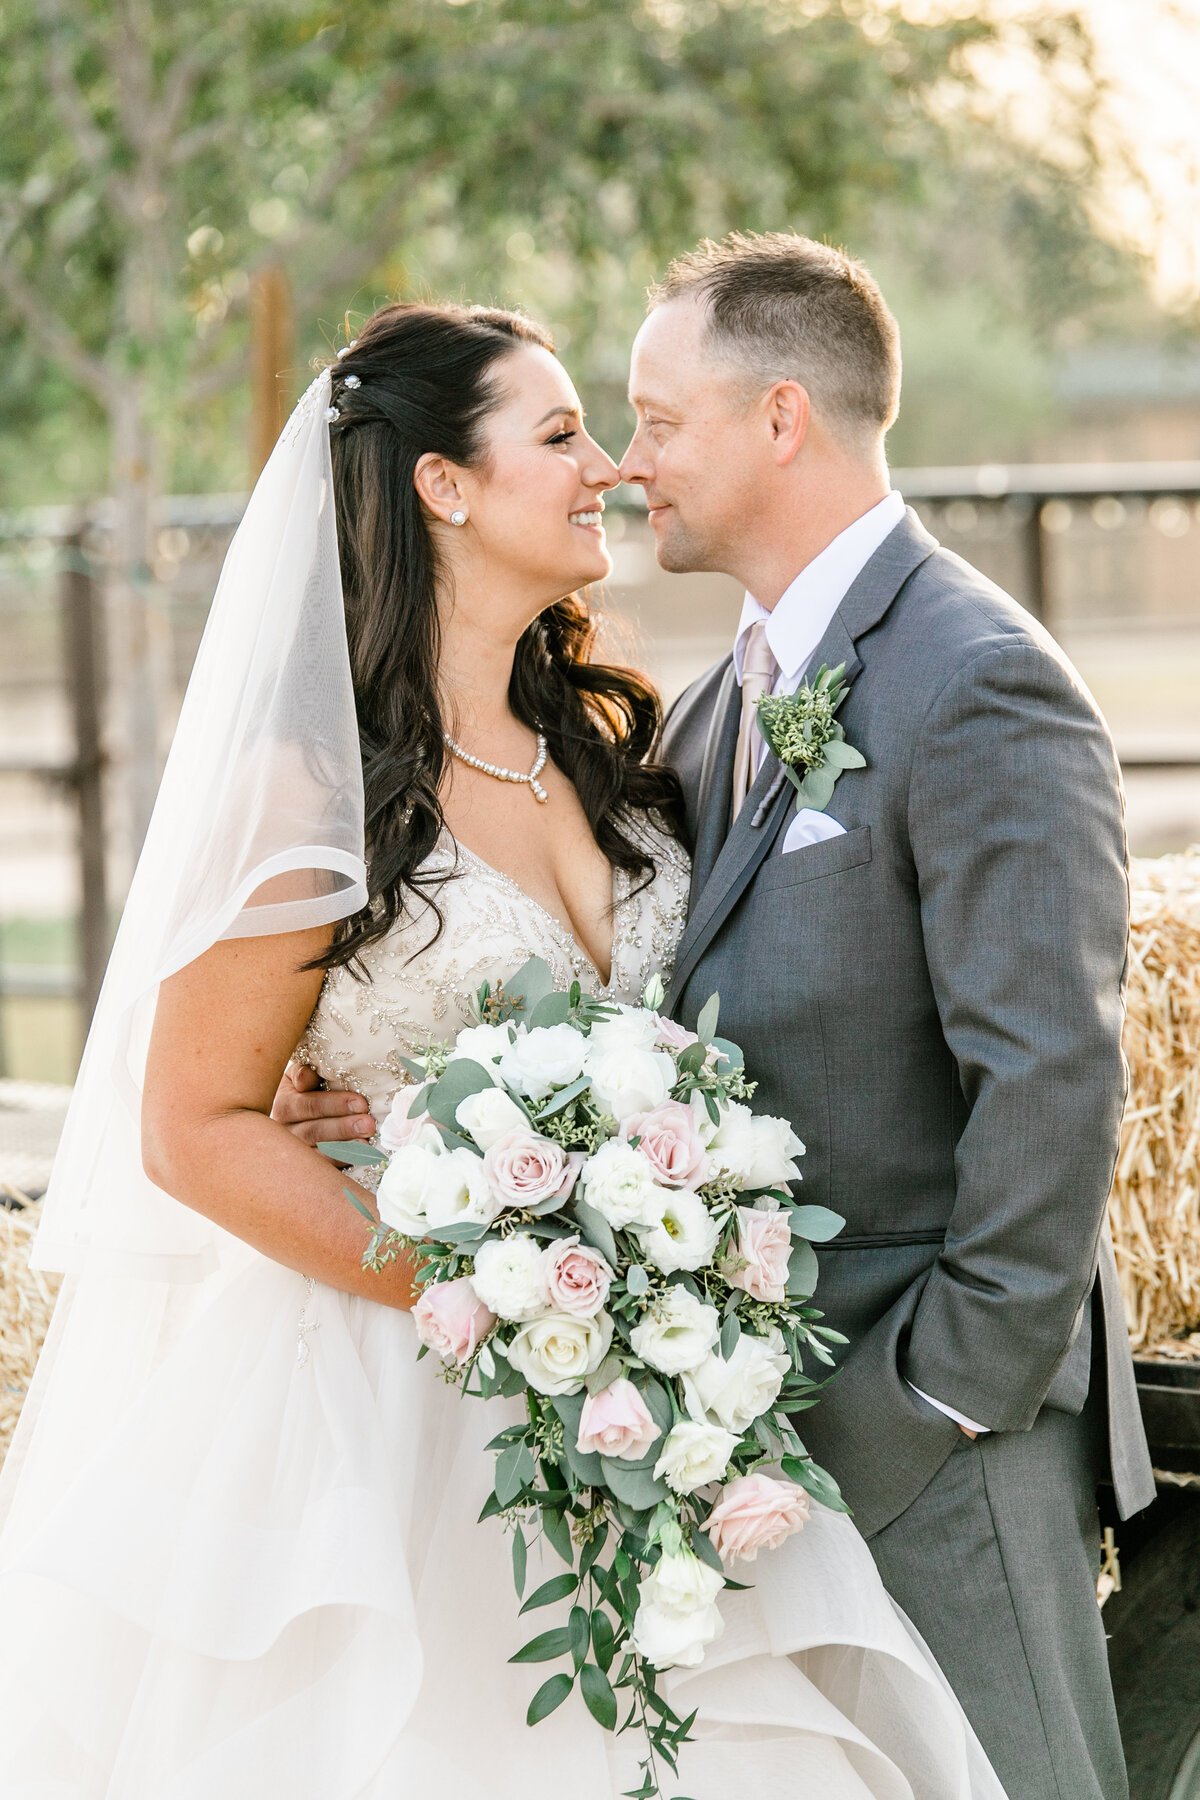 Karlie Colleen Photography - Glendale Arizona Backyard ranch wedding - Meghan & Ken-512